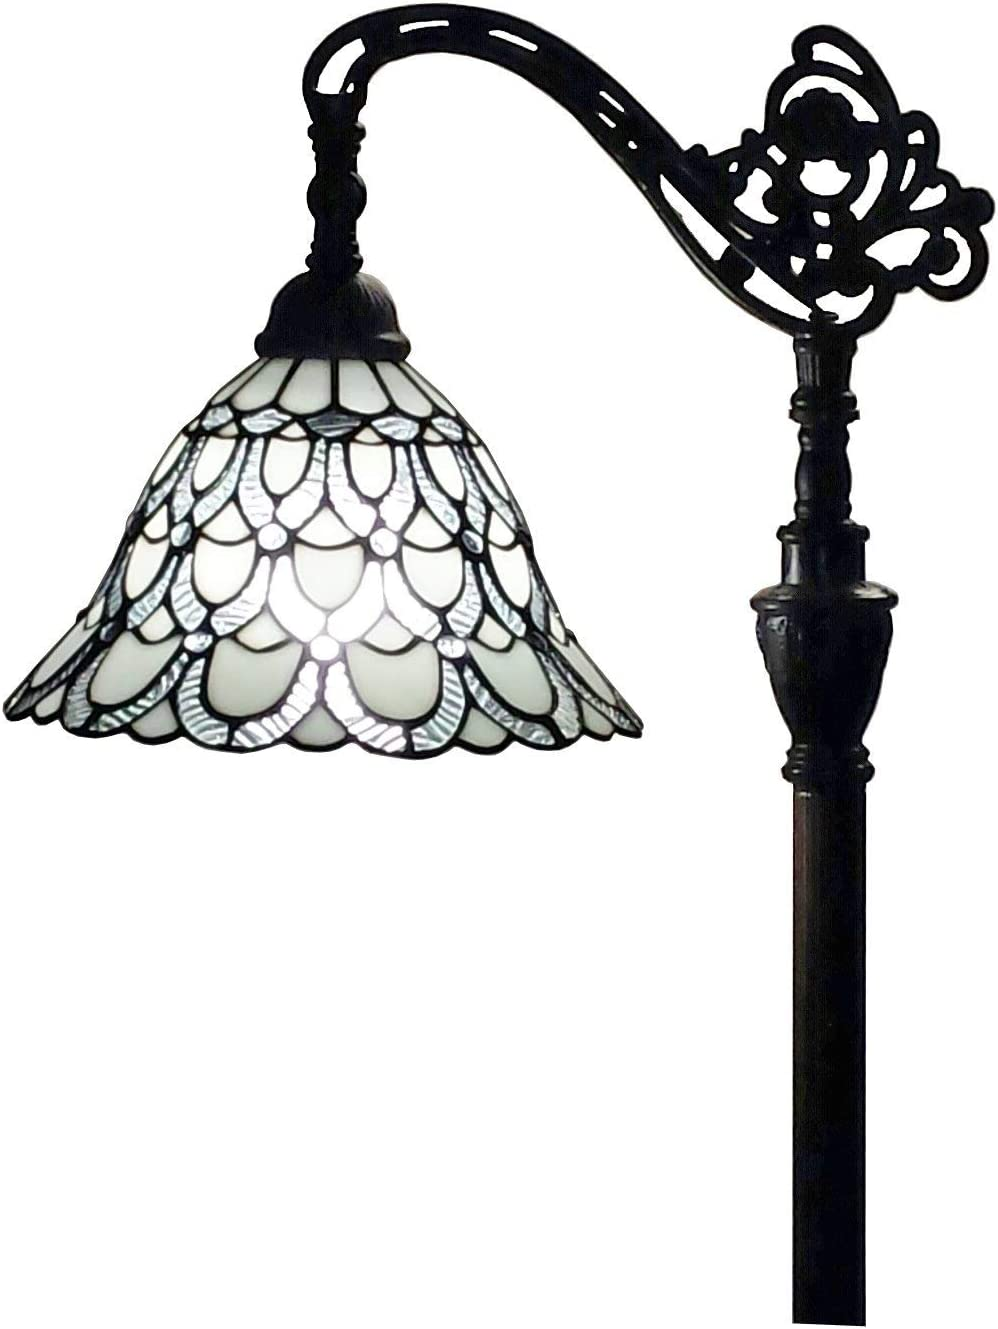 Tiffany Style Floor Lamp Arched 62 Tall Stained Glass White Mahogany Peacock Feathers Antique Vintage Light Decor Bedroom Living Room Reading Gift AM107FL11 Amora Lighting